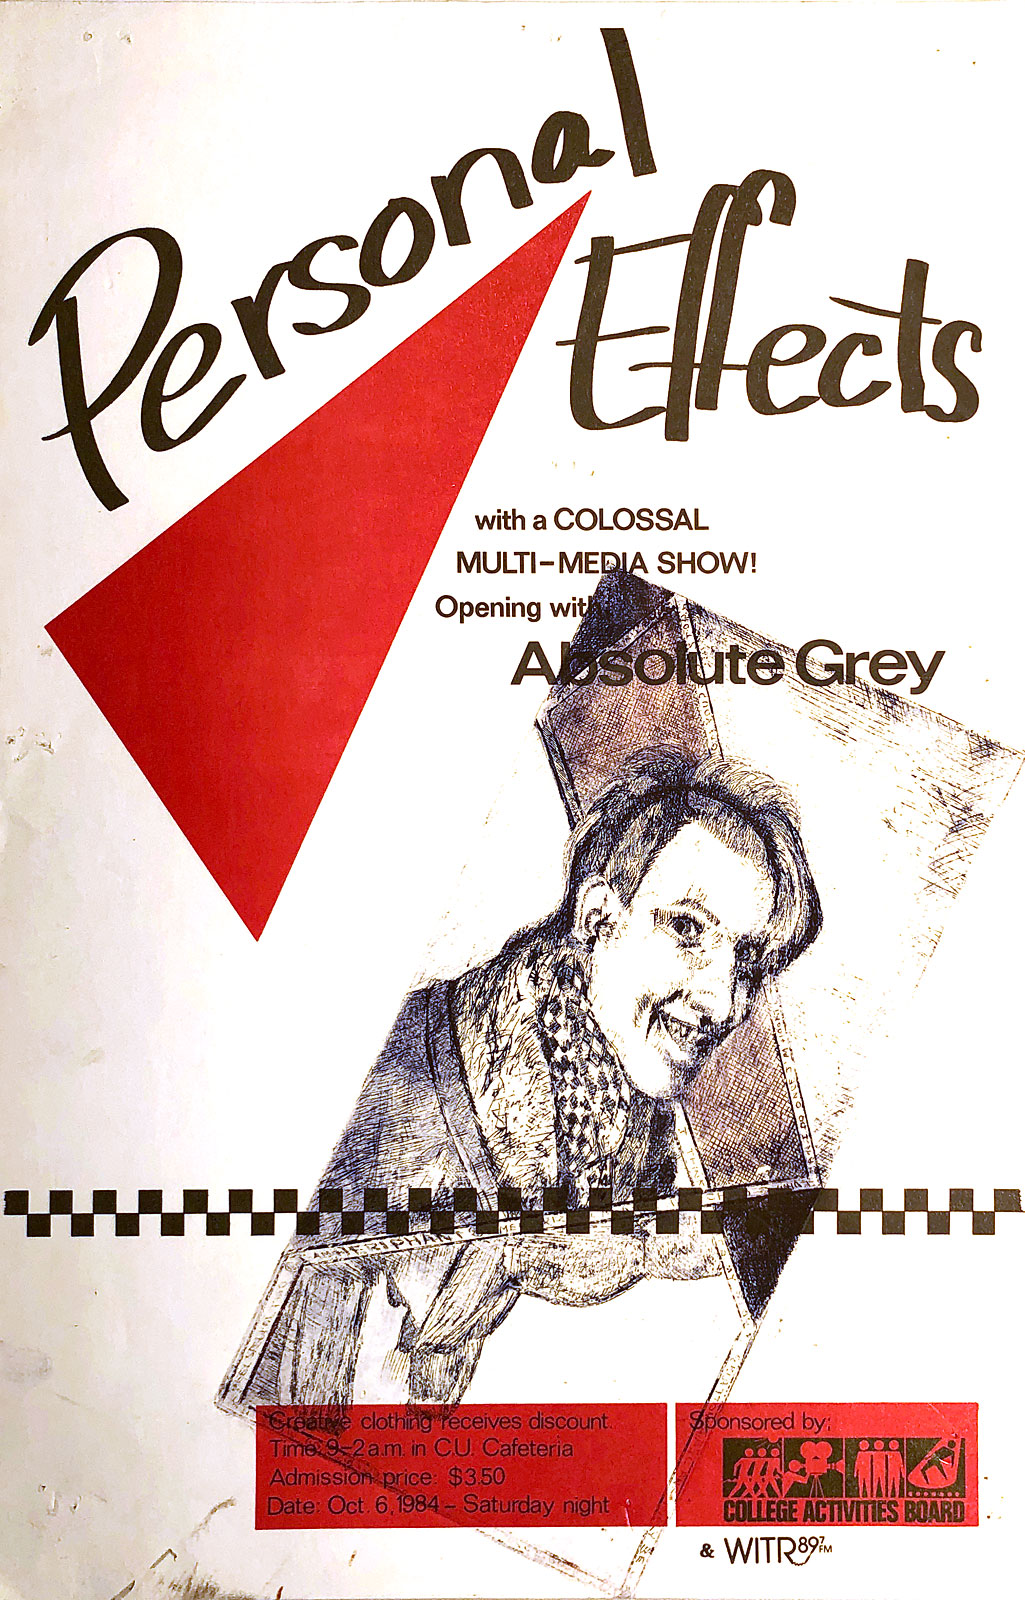 Poster for Personal Effects and Absolute Grey at Rochester Institute of Technology in Rochester, New York on 10.06.1984. This poster was designed by Absolute Grey.